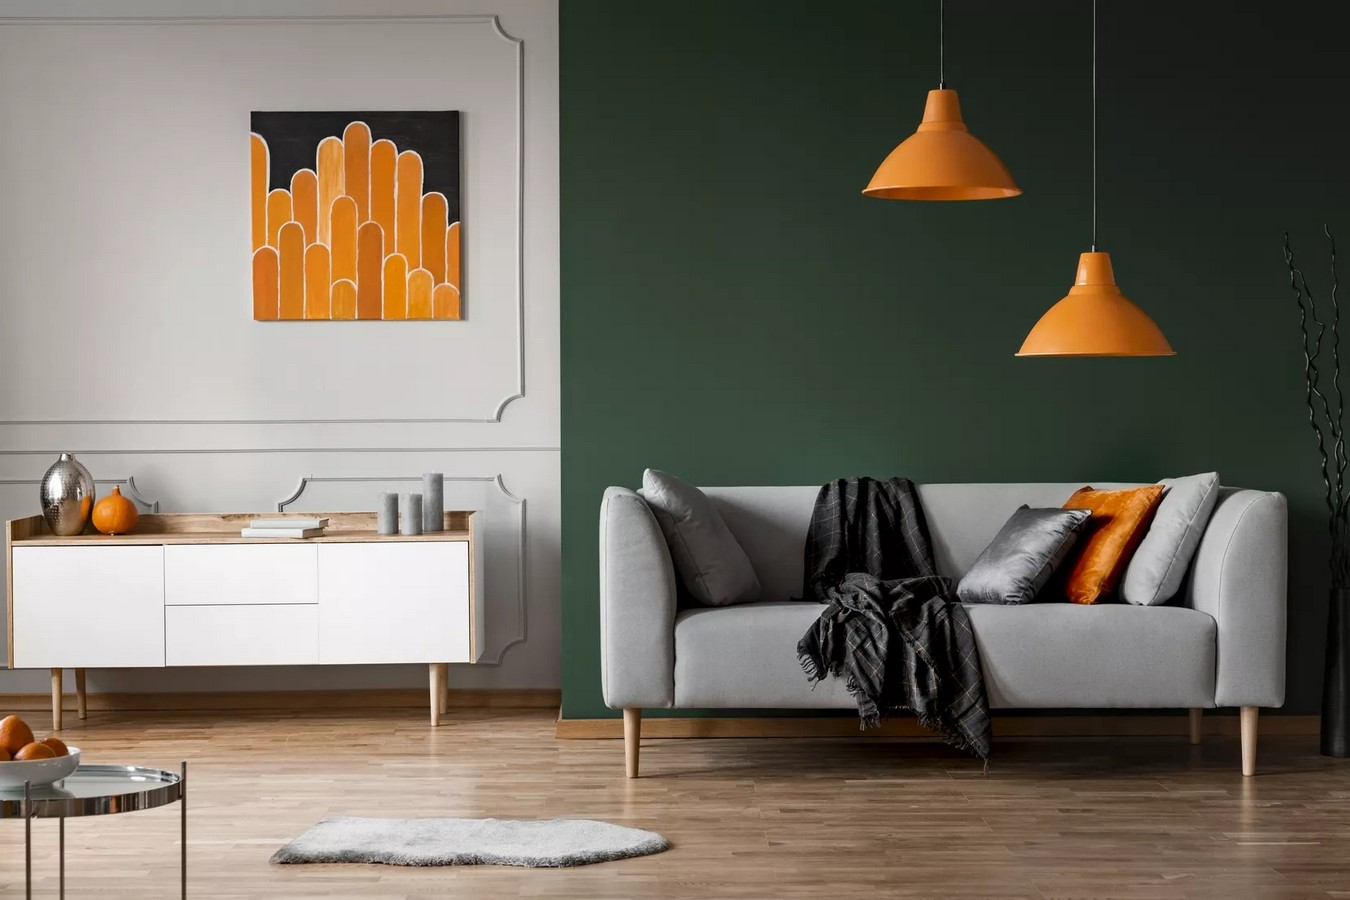 How are themes and colors more than just an aspect of interior designing - Sheet3